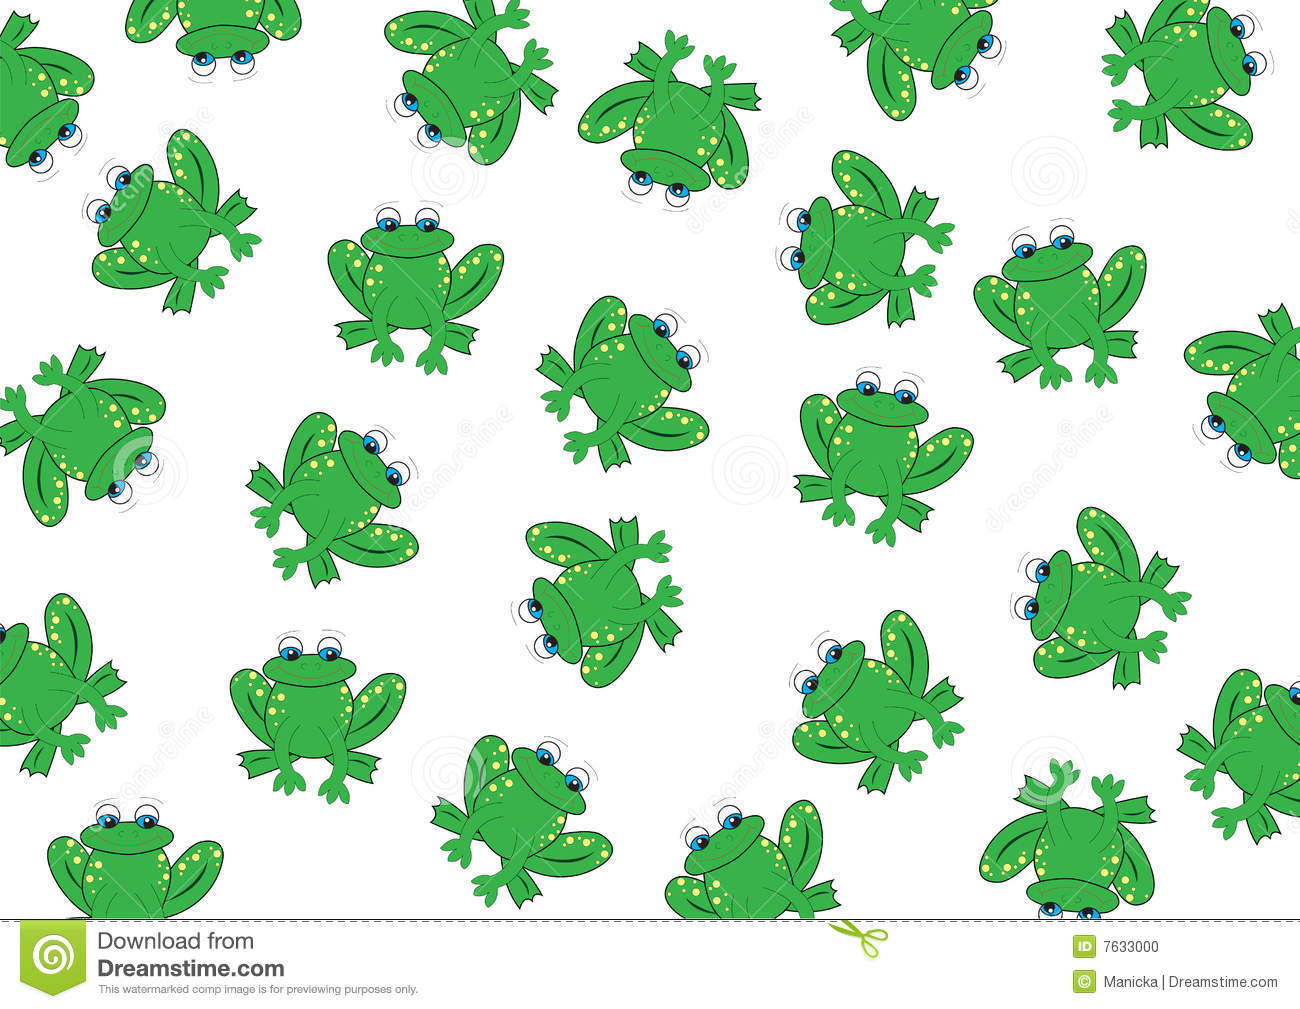 frog background stock vector illustration of water Cute Green Frog Frog From Frog and Toad Character